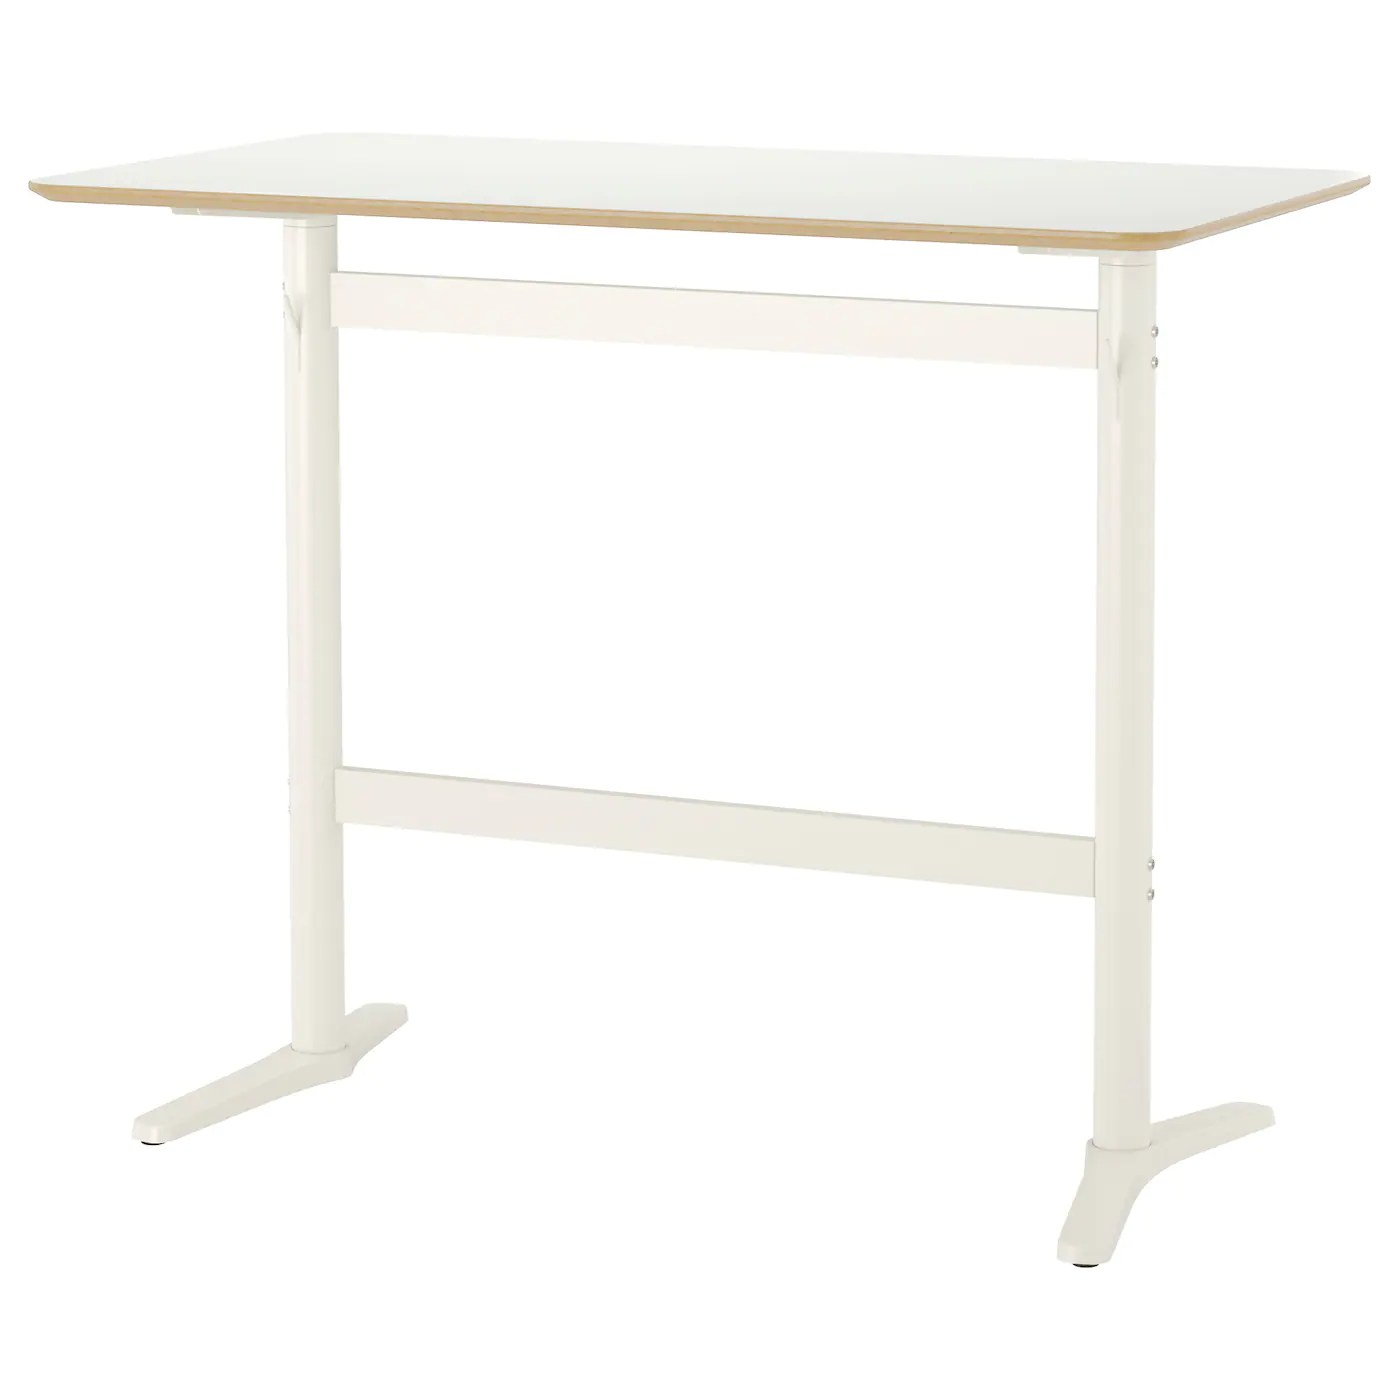 Table Carree Ikea Tables De Bar Café Design Pas Cher Ikea